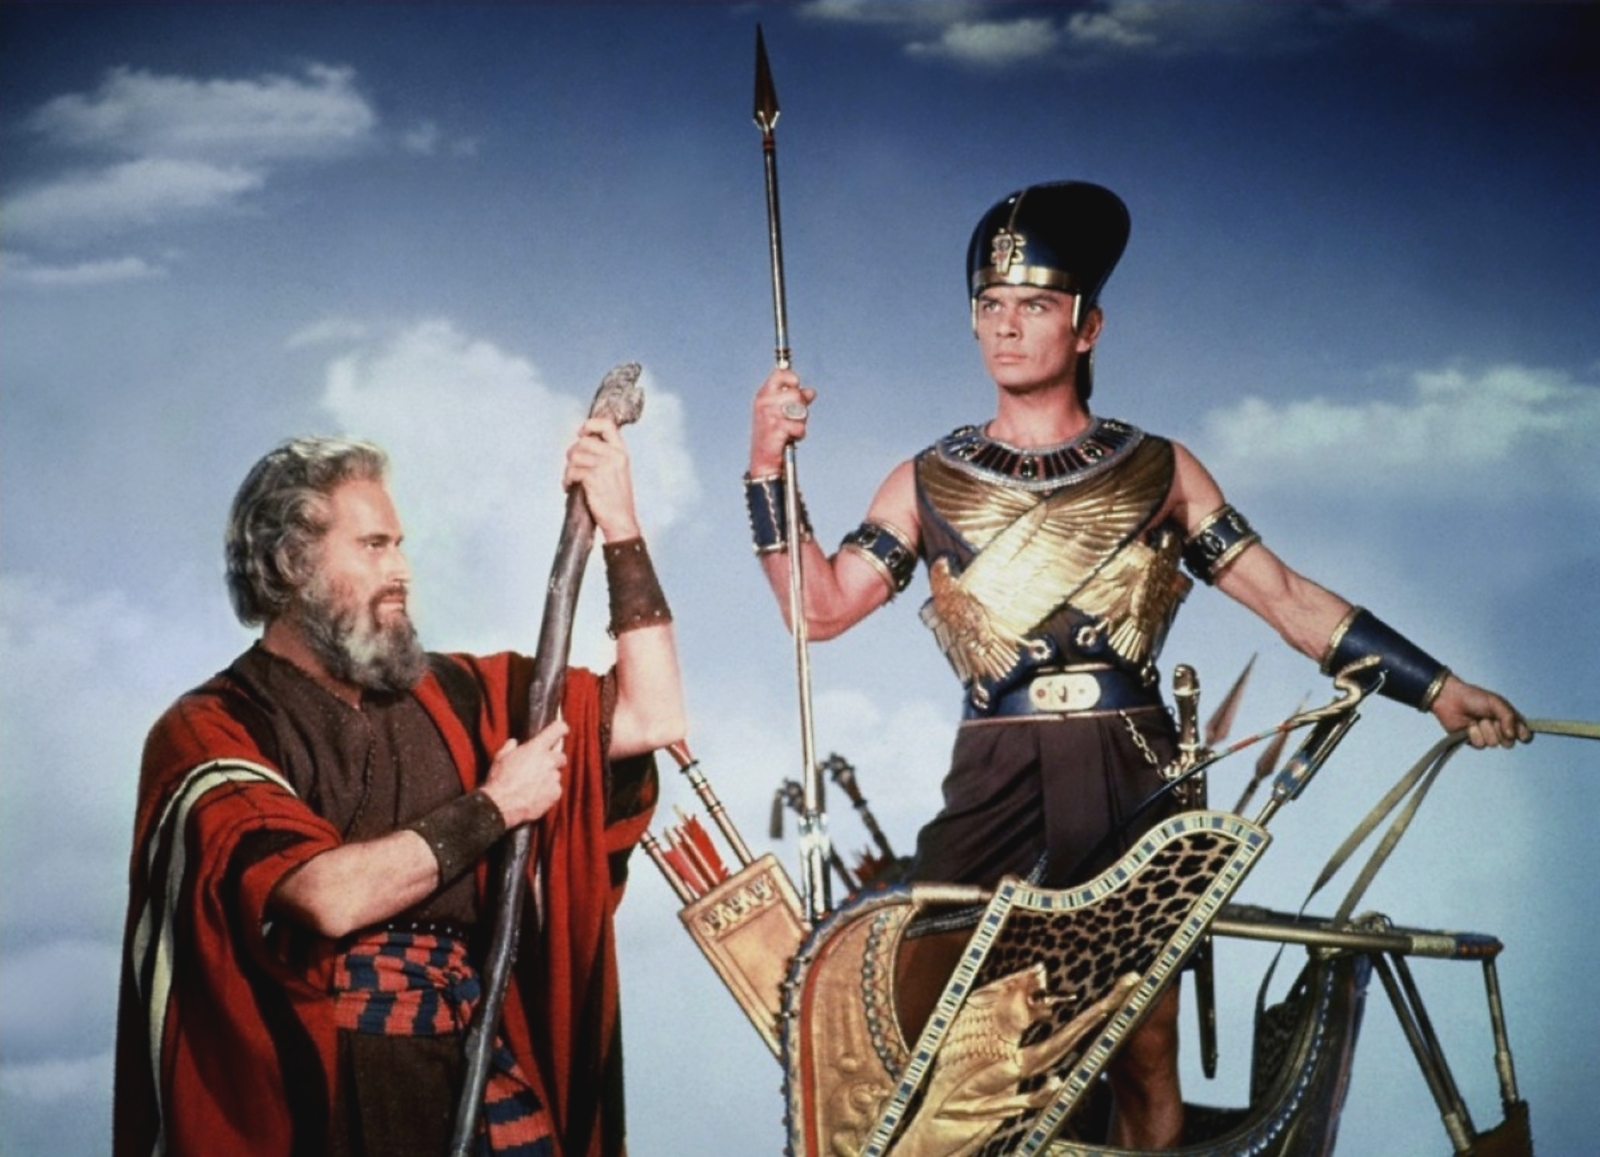 Charlton Heston in The Ten Commandments With Yul Brynner (R)